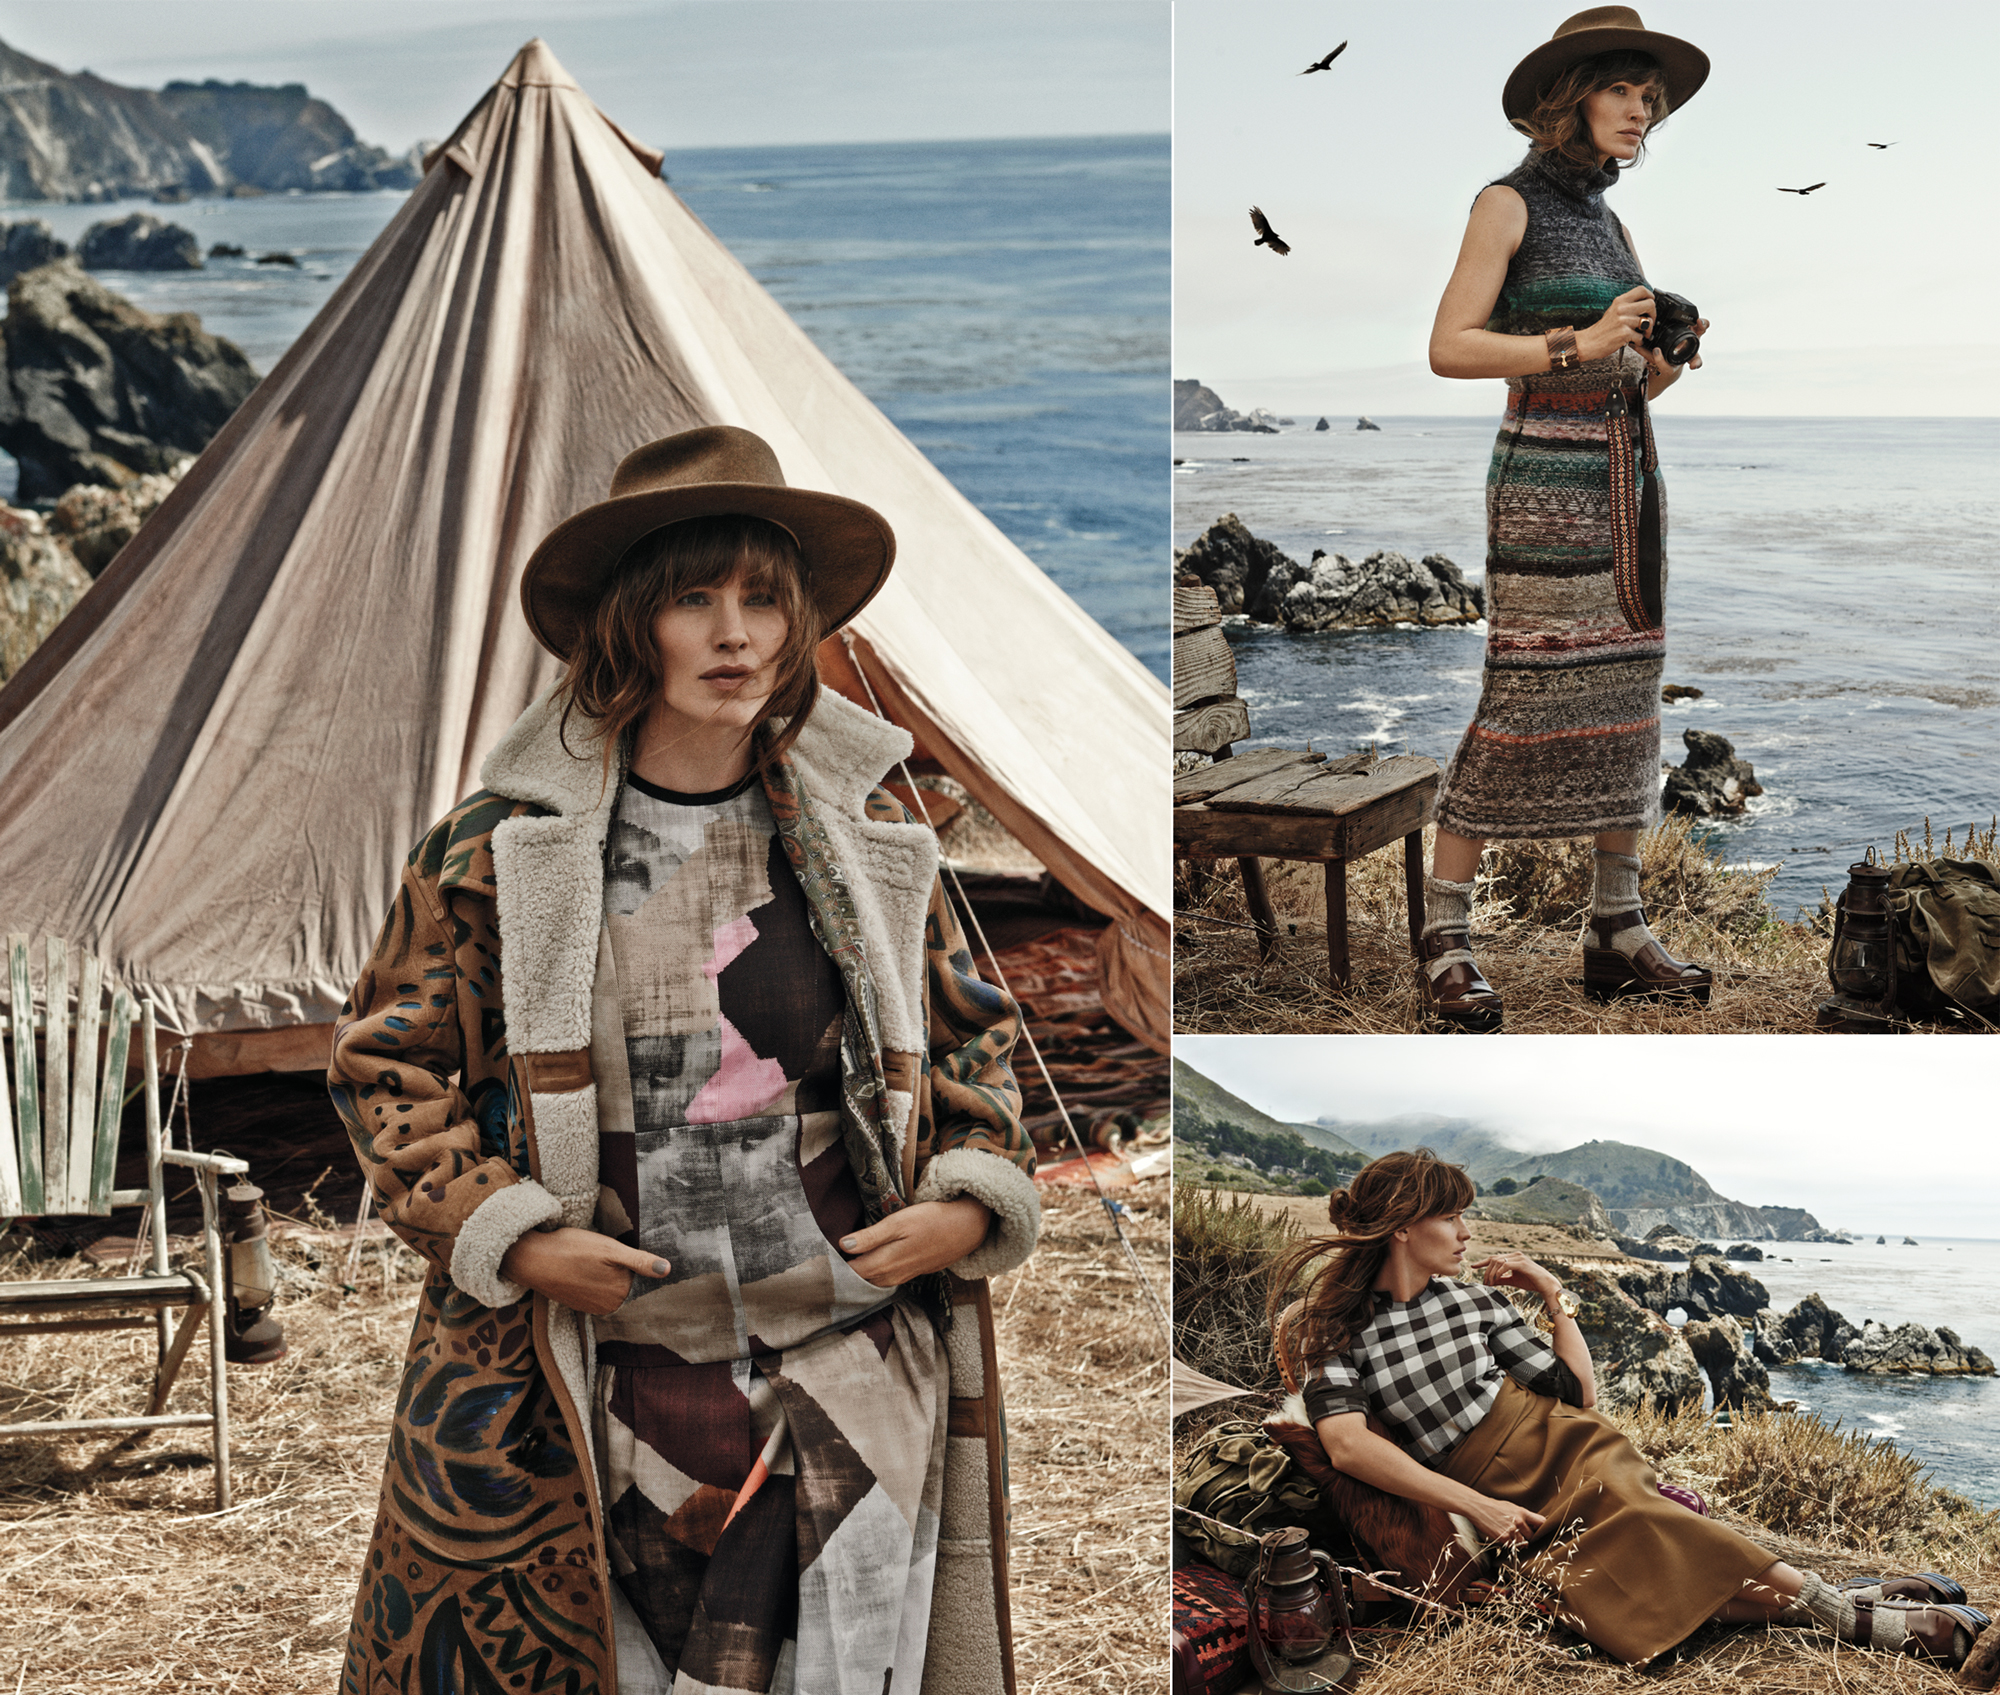 11 Awesome Glamping Picks to Hit the Outdoors in Style